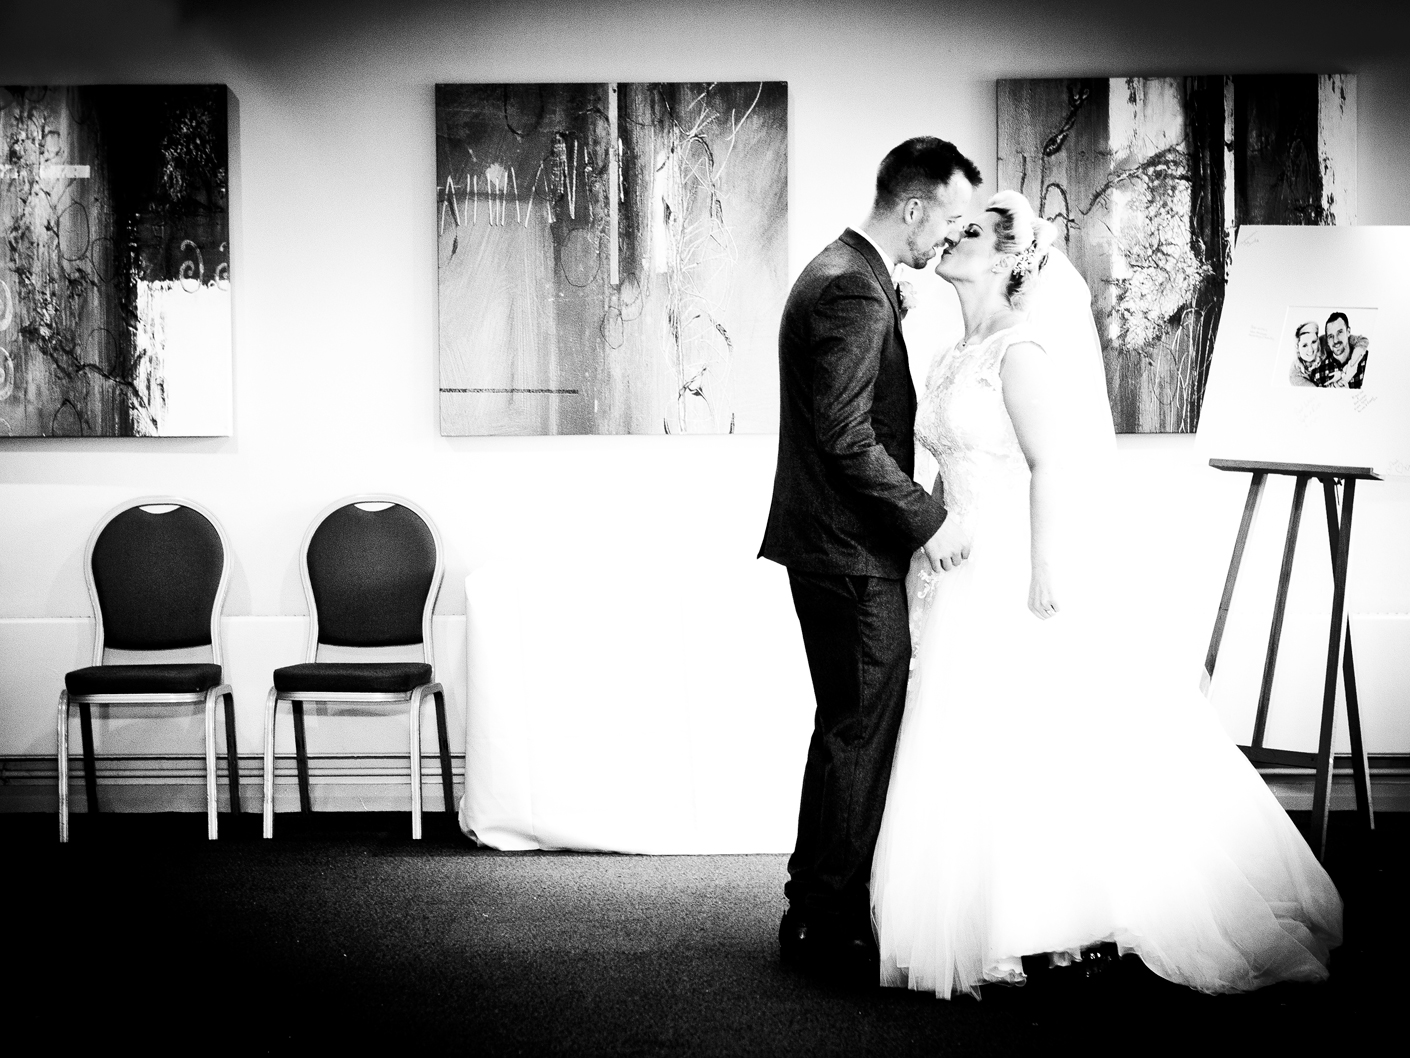 photography-of-the-bride-and-groom-before-the-wedding-ceremony-in-macclesfield-cheshire